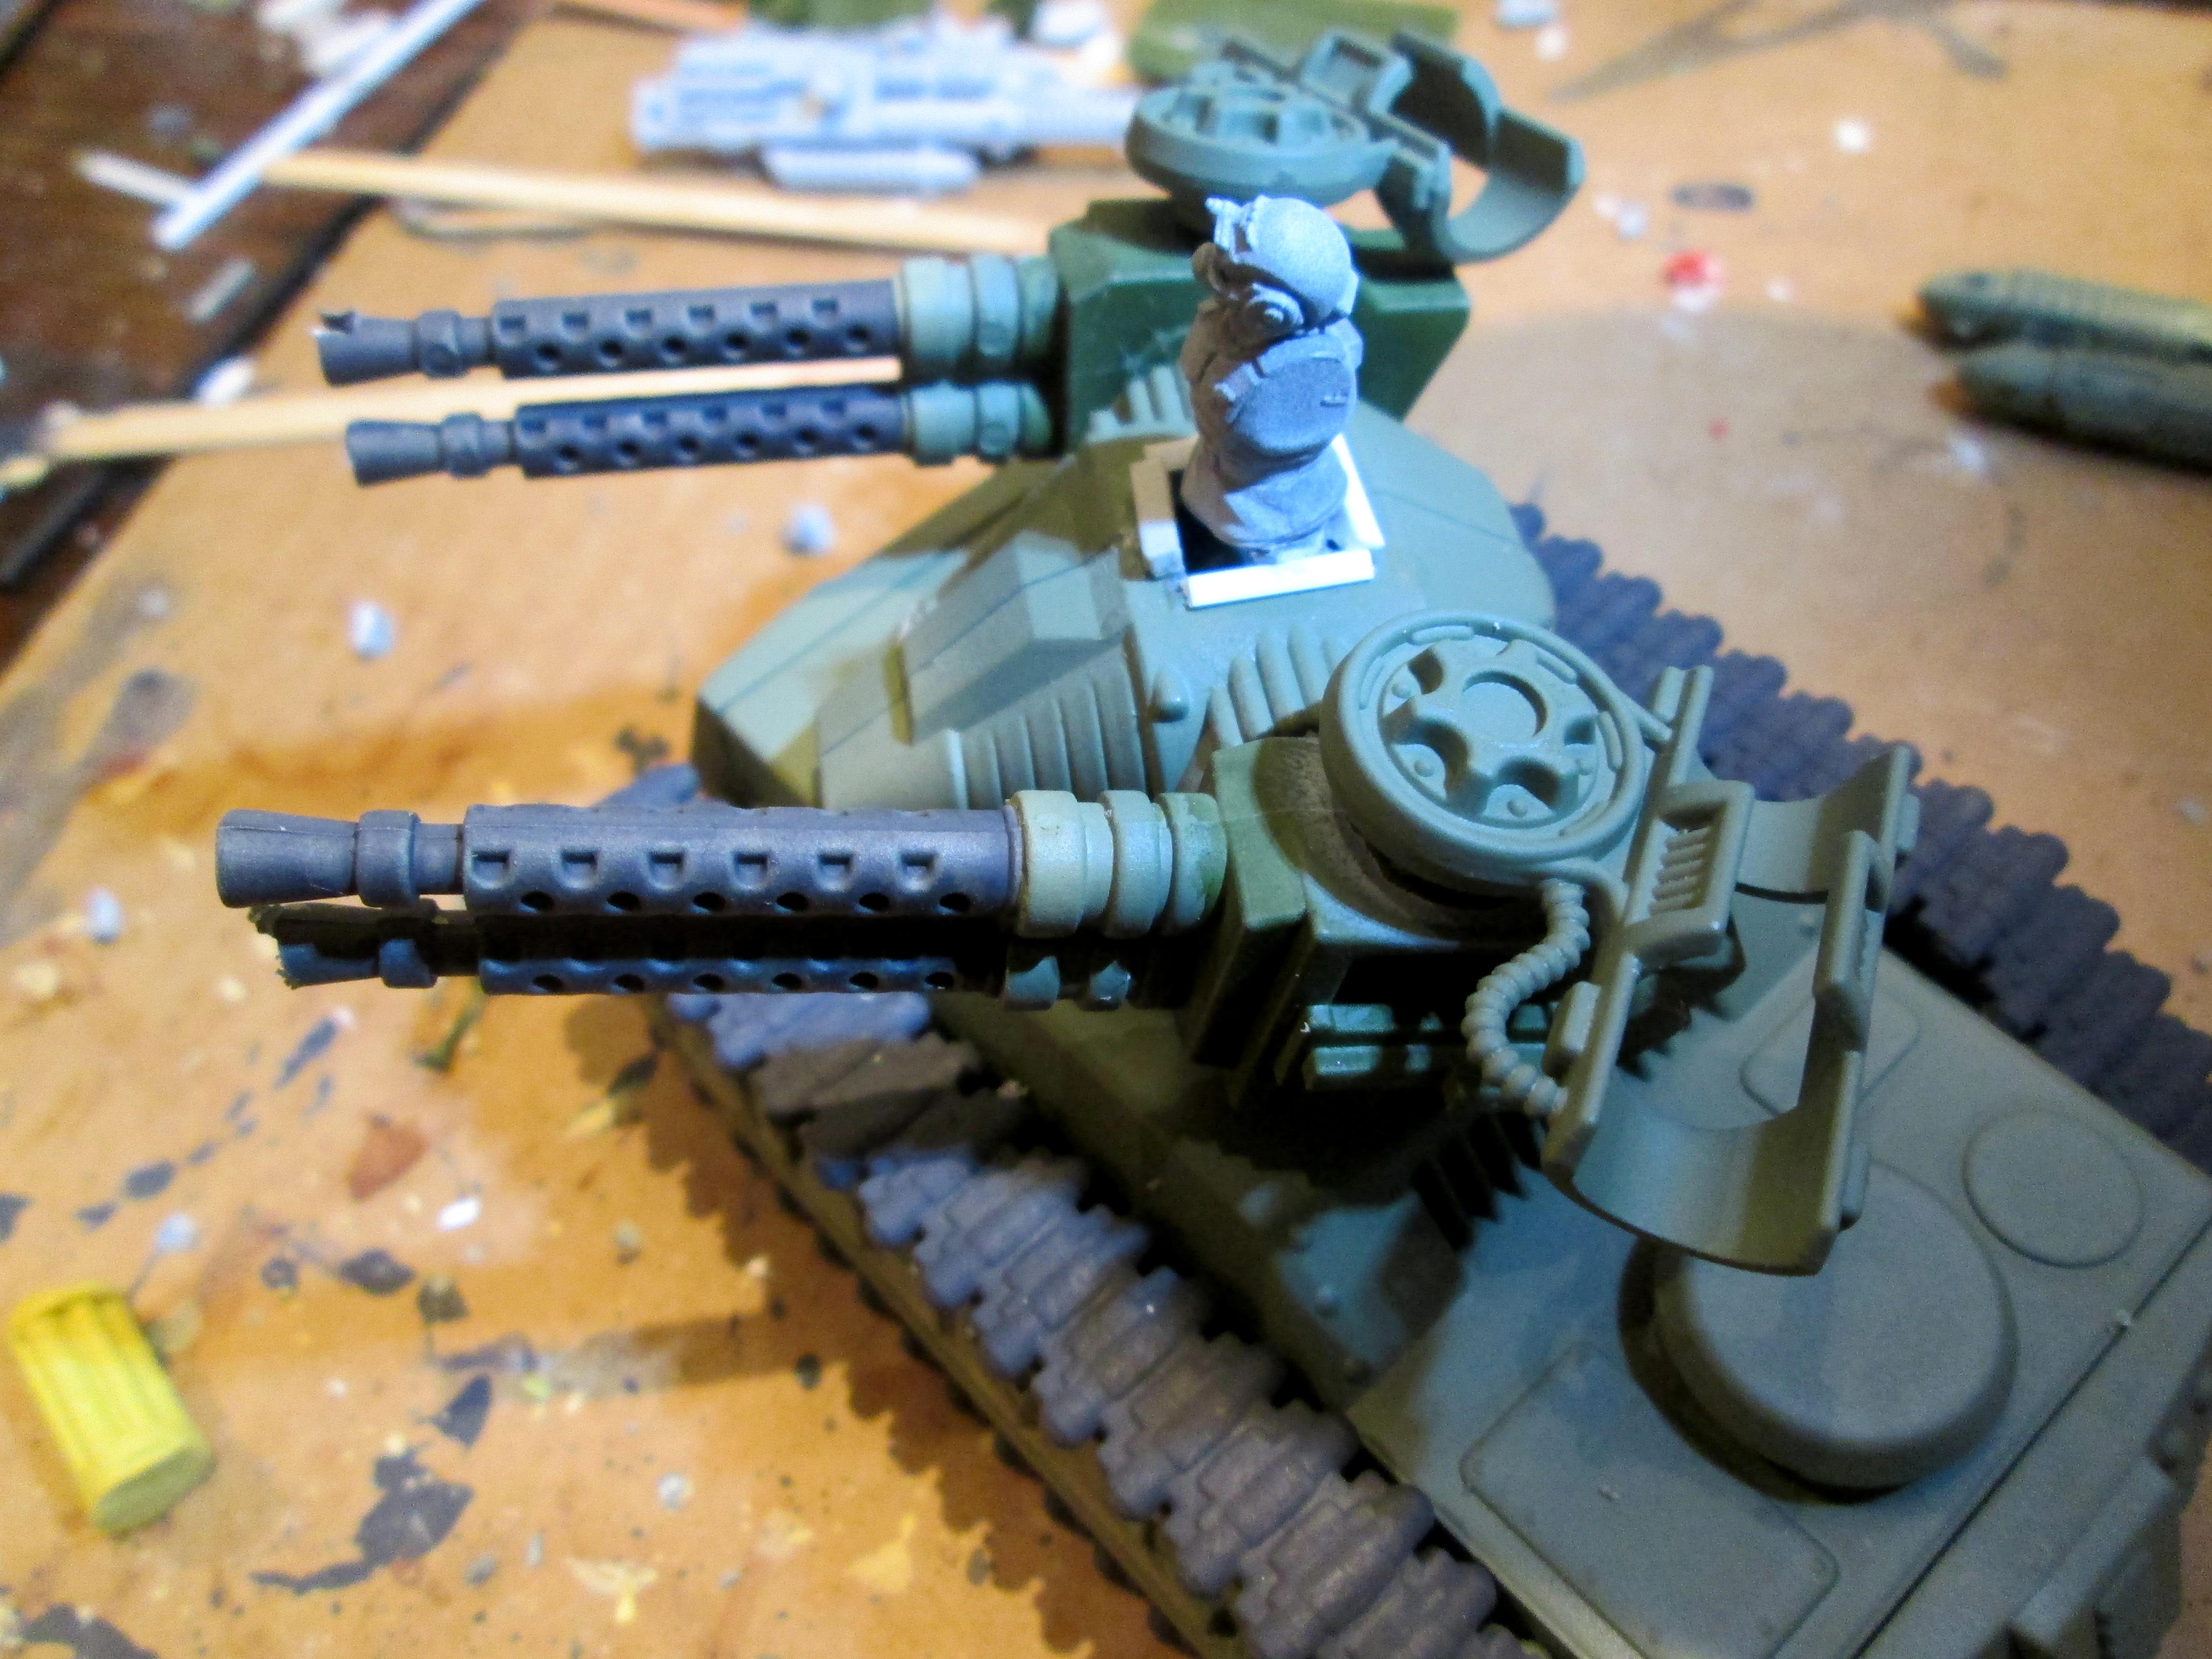 Bronekorpus, Conversion, Hydra, Imperial Guard, Tank